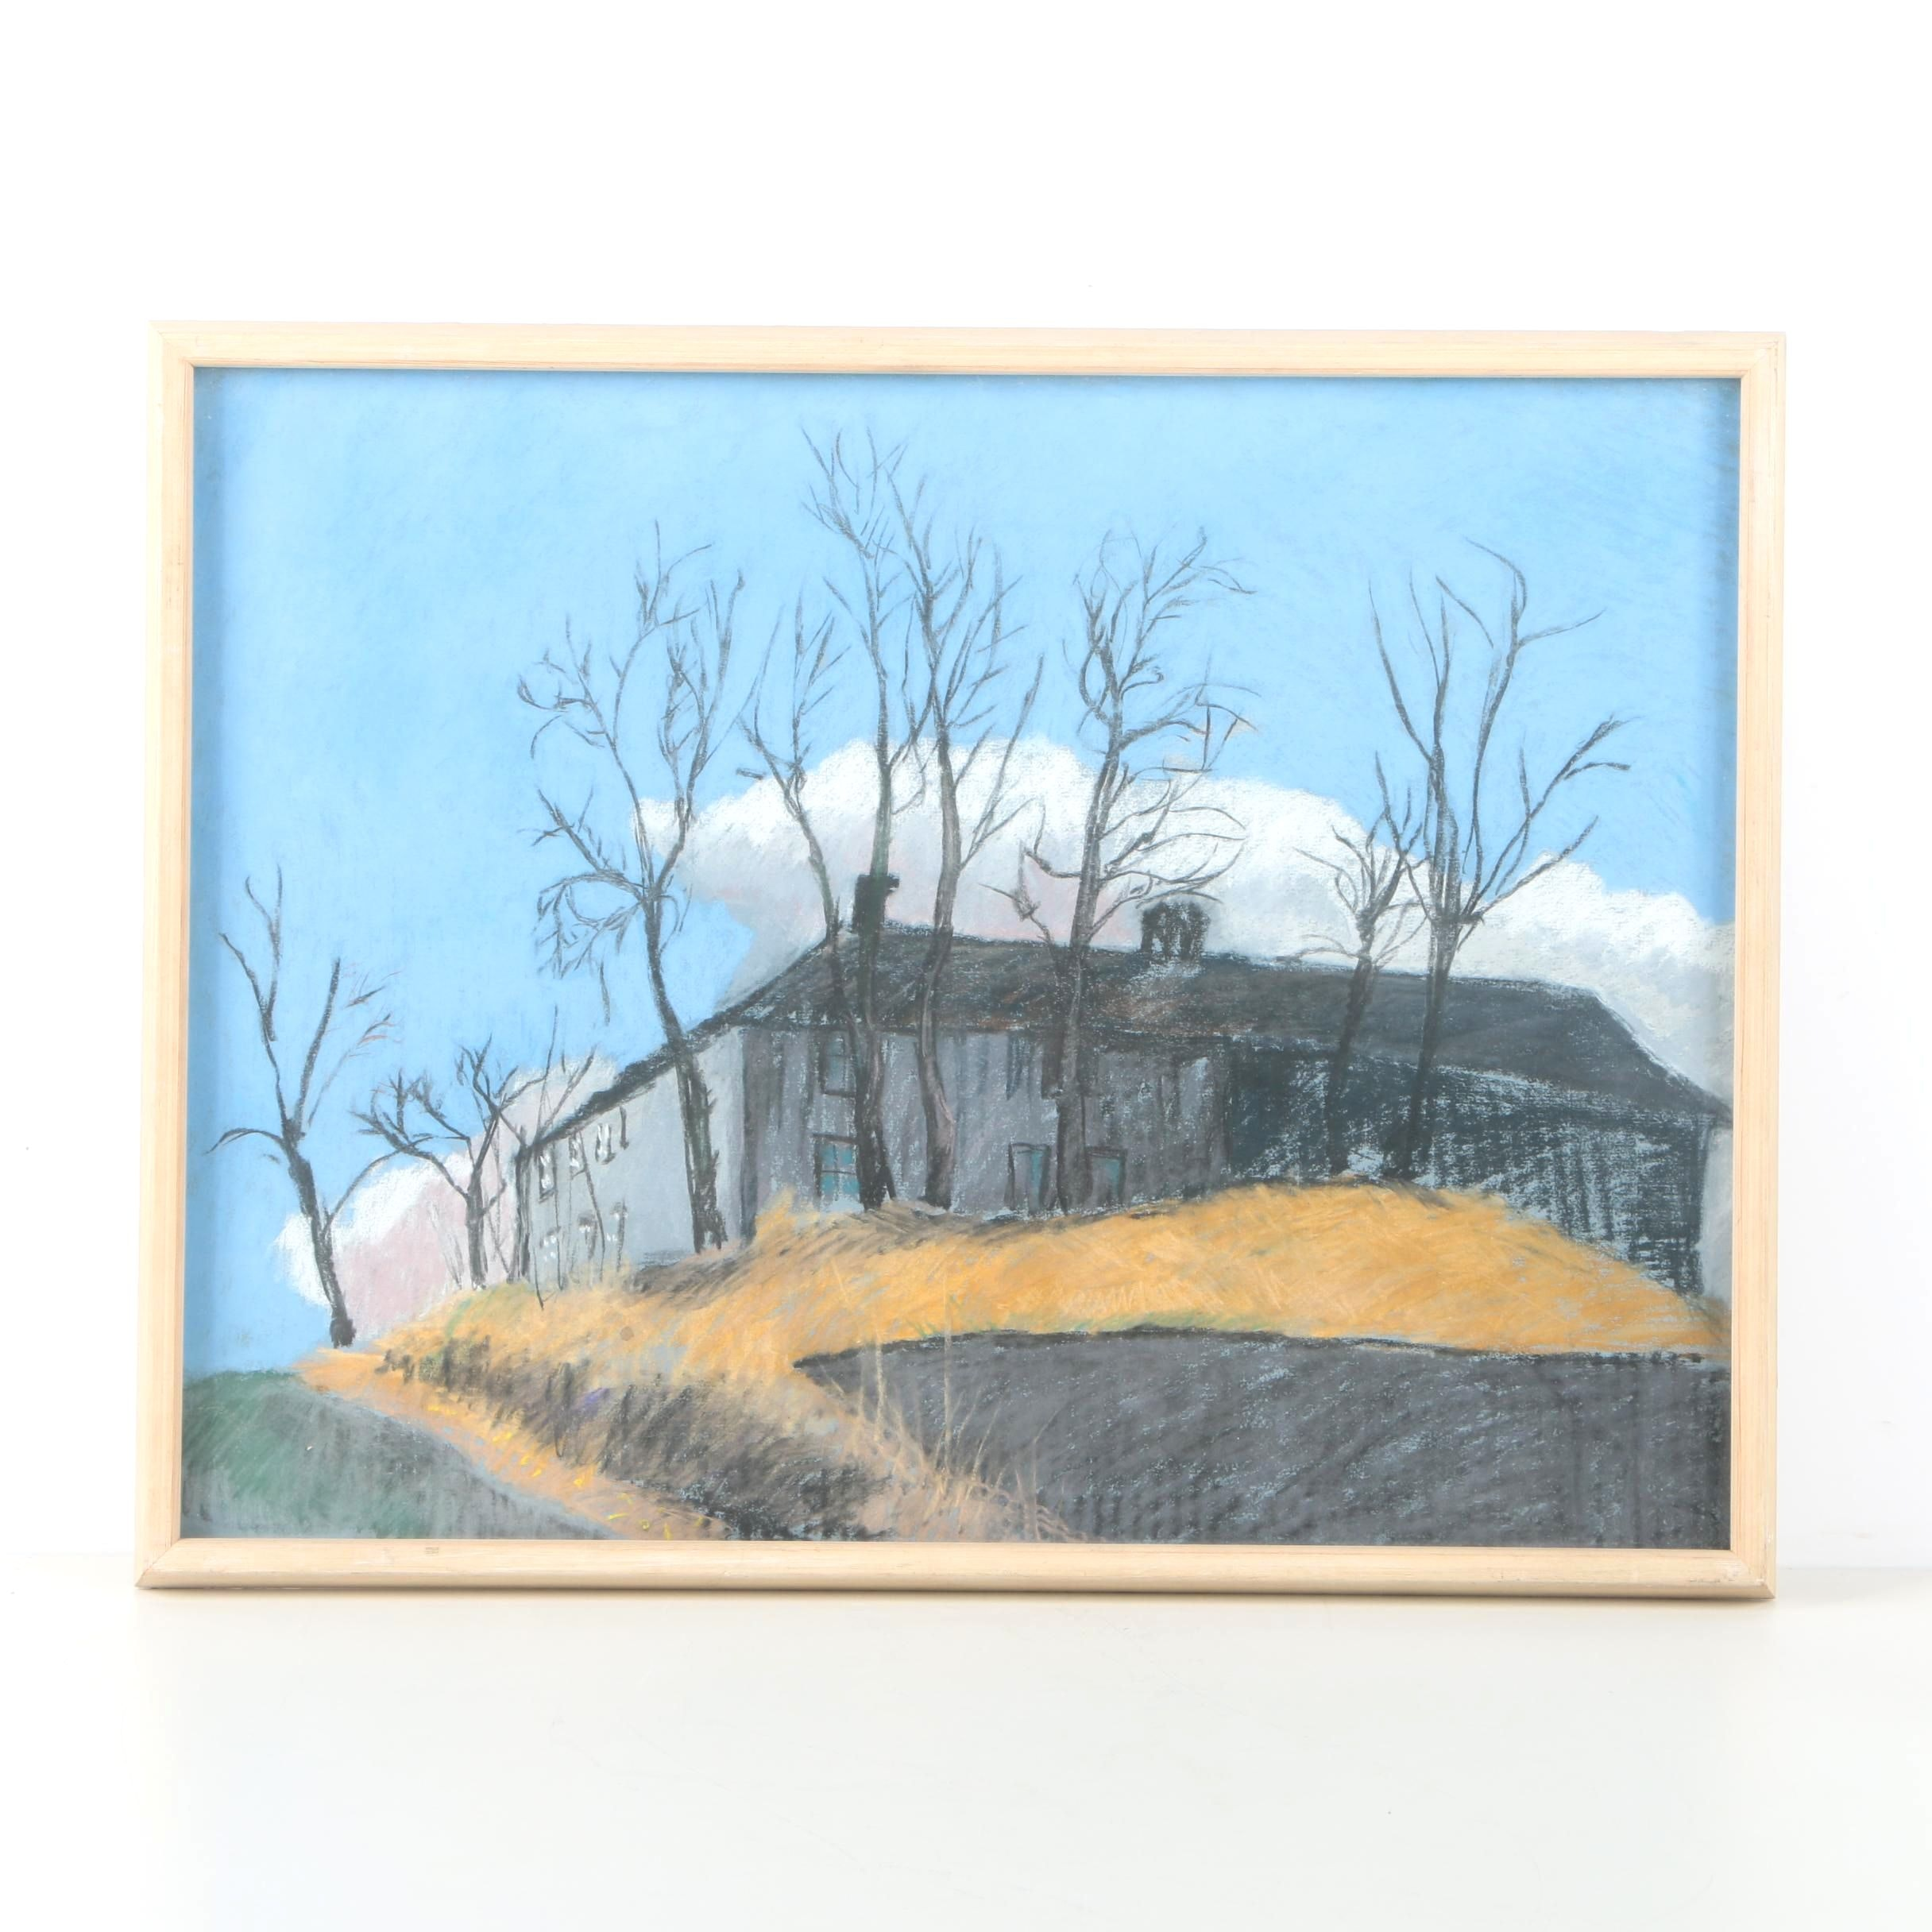 1979 E. Ödmann Oil Pastel Drawing on Paper of a Country Manor